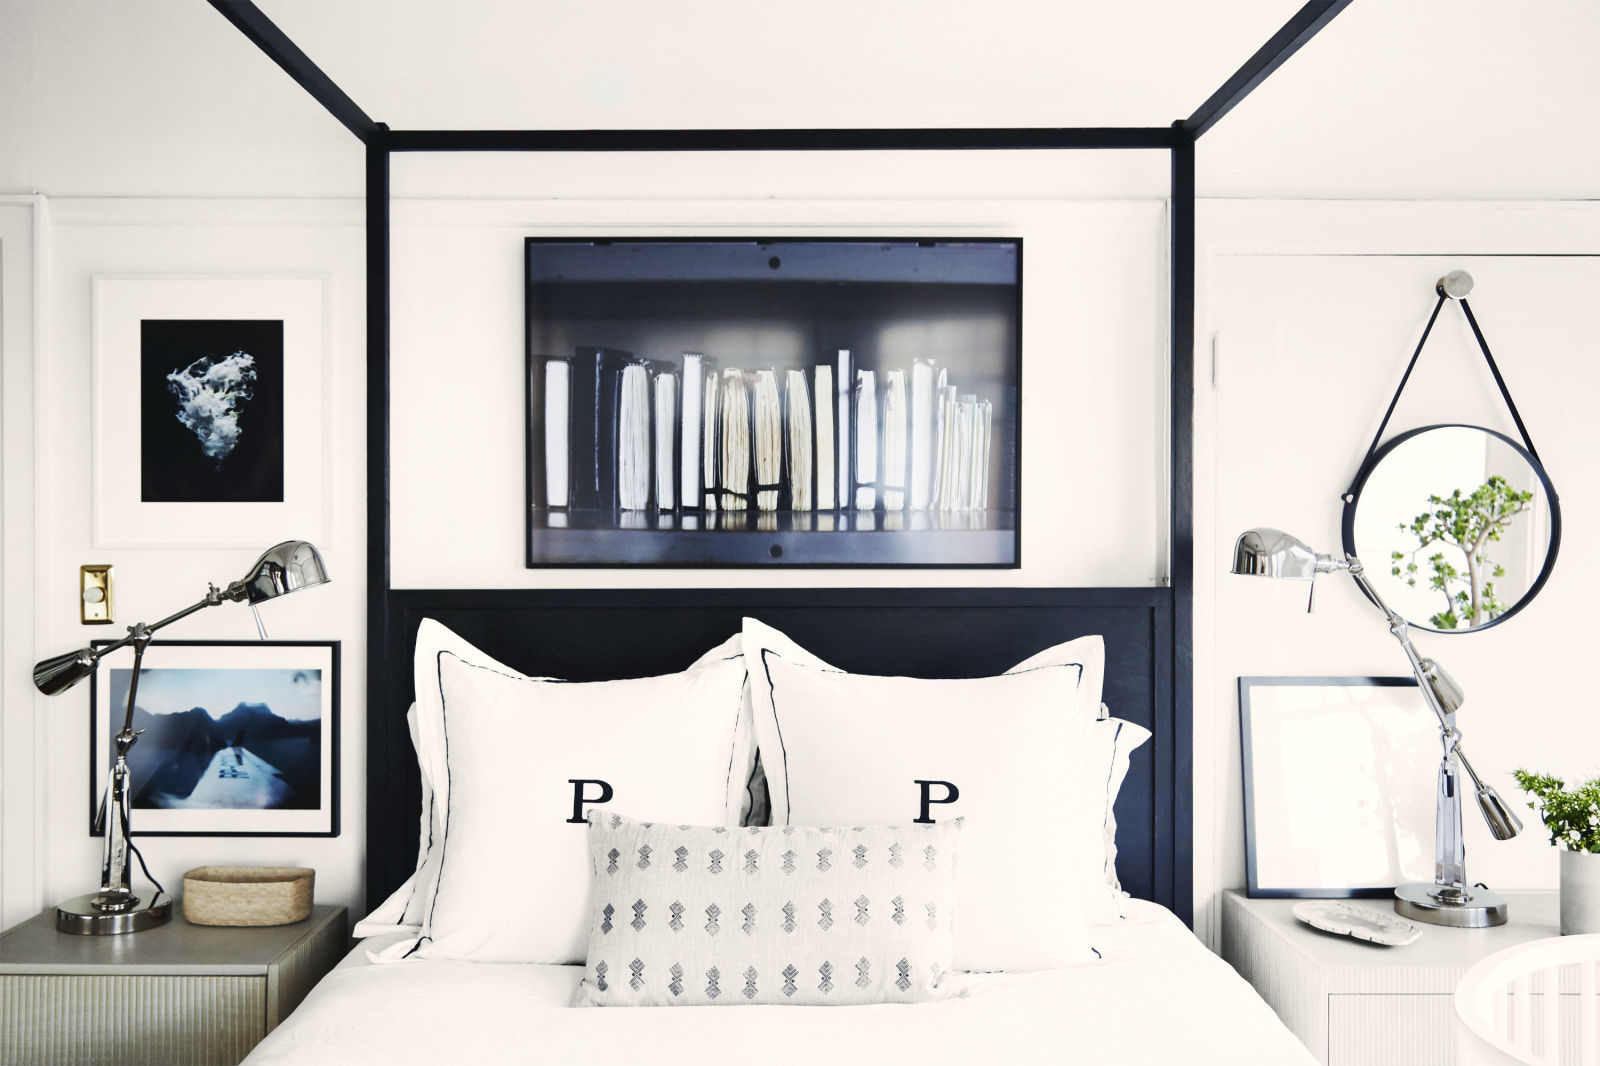 70 Bedroom Decorating Ideas How to Design a Master Bedroom – Master Bedroom Images